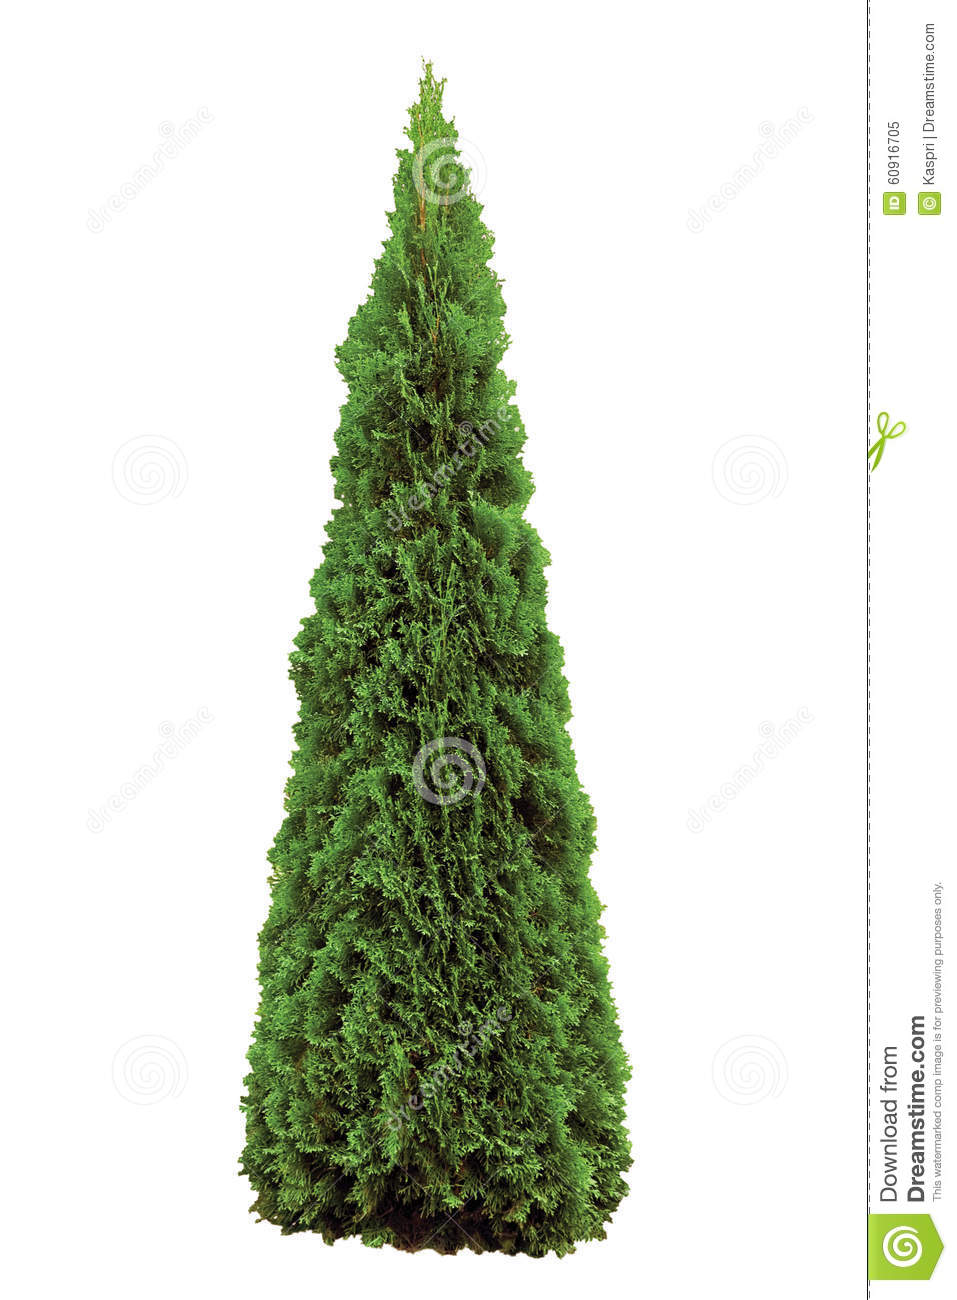 Thuja Occidentalis 'Smaragd', Green American Arborvitae Occidental.